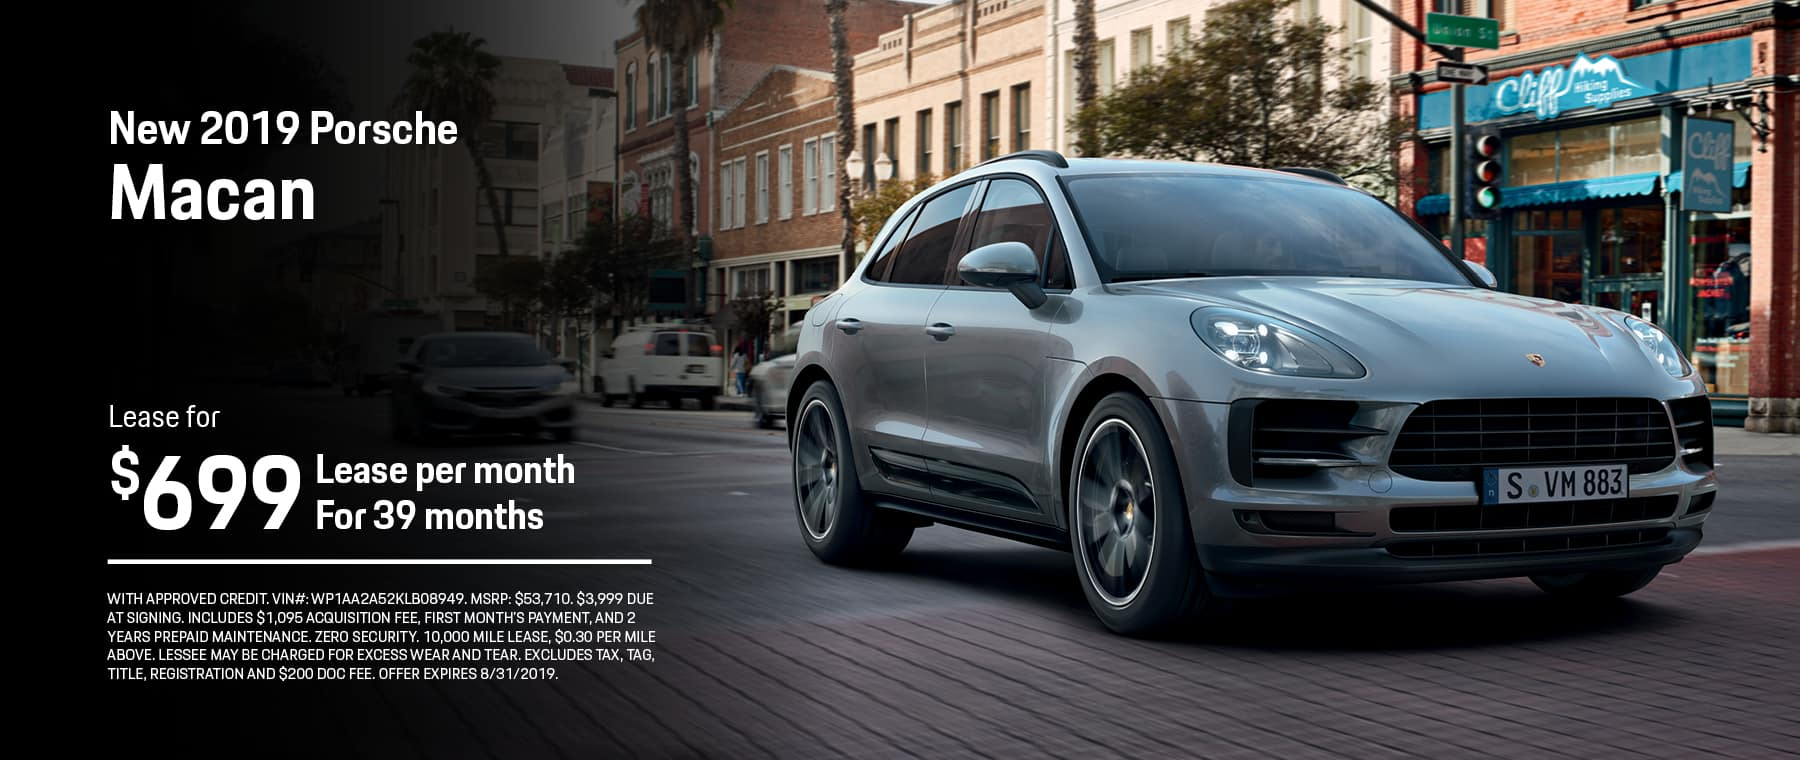 AUGUST MACAN SPECIAL